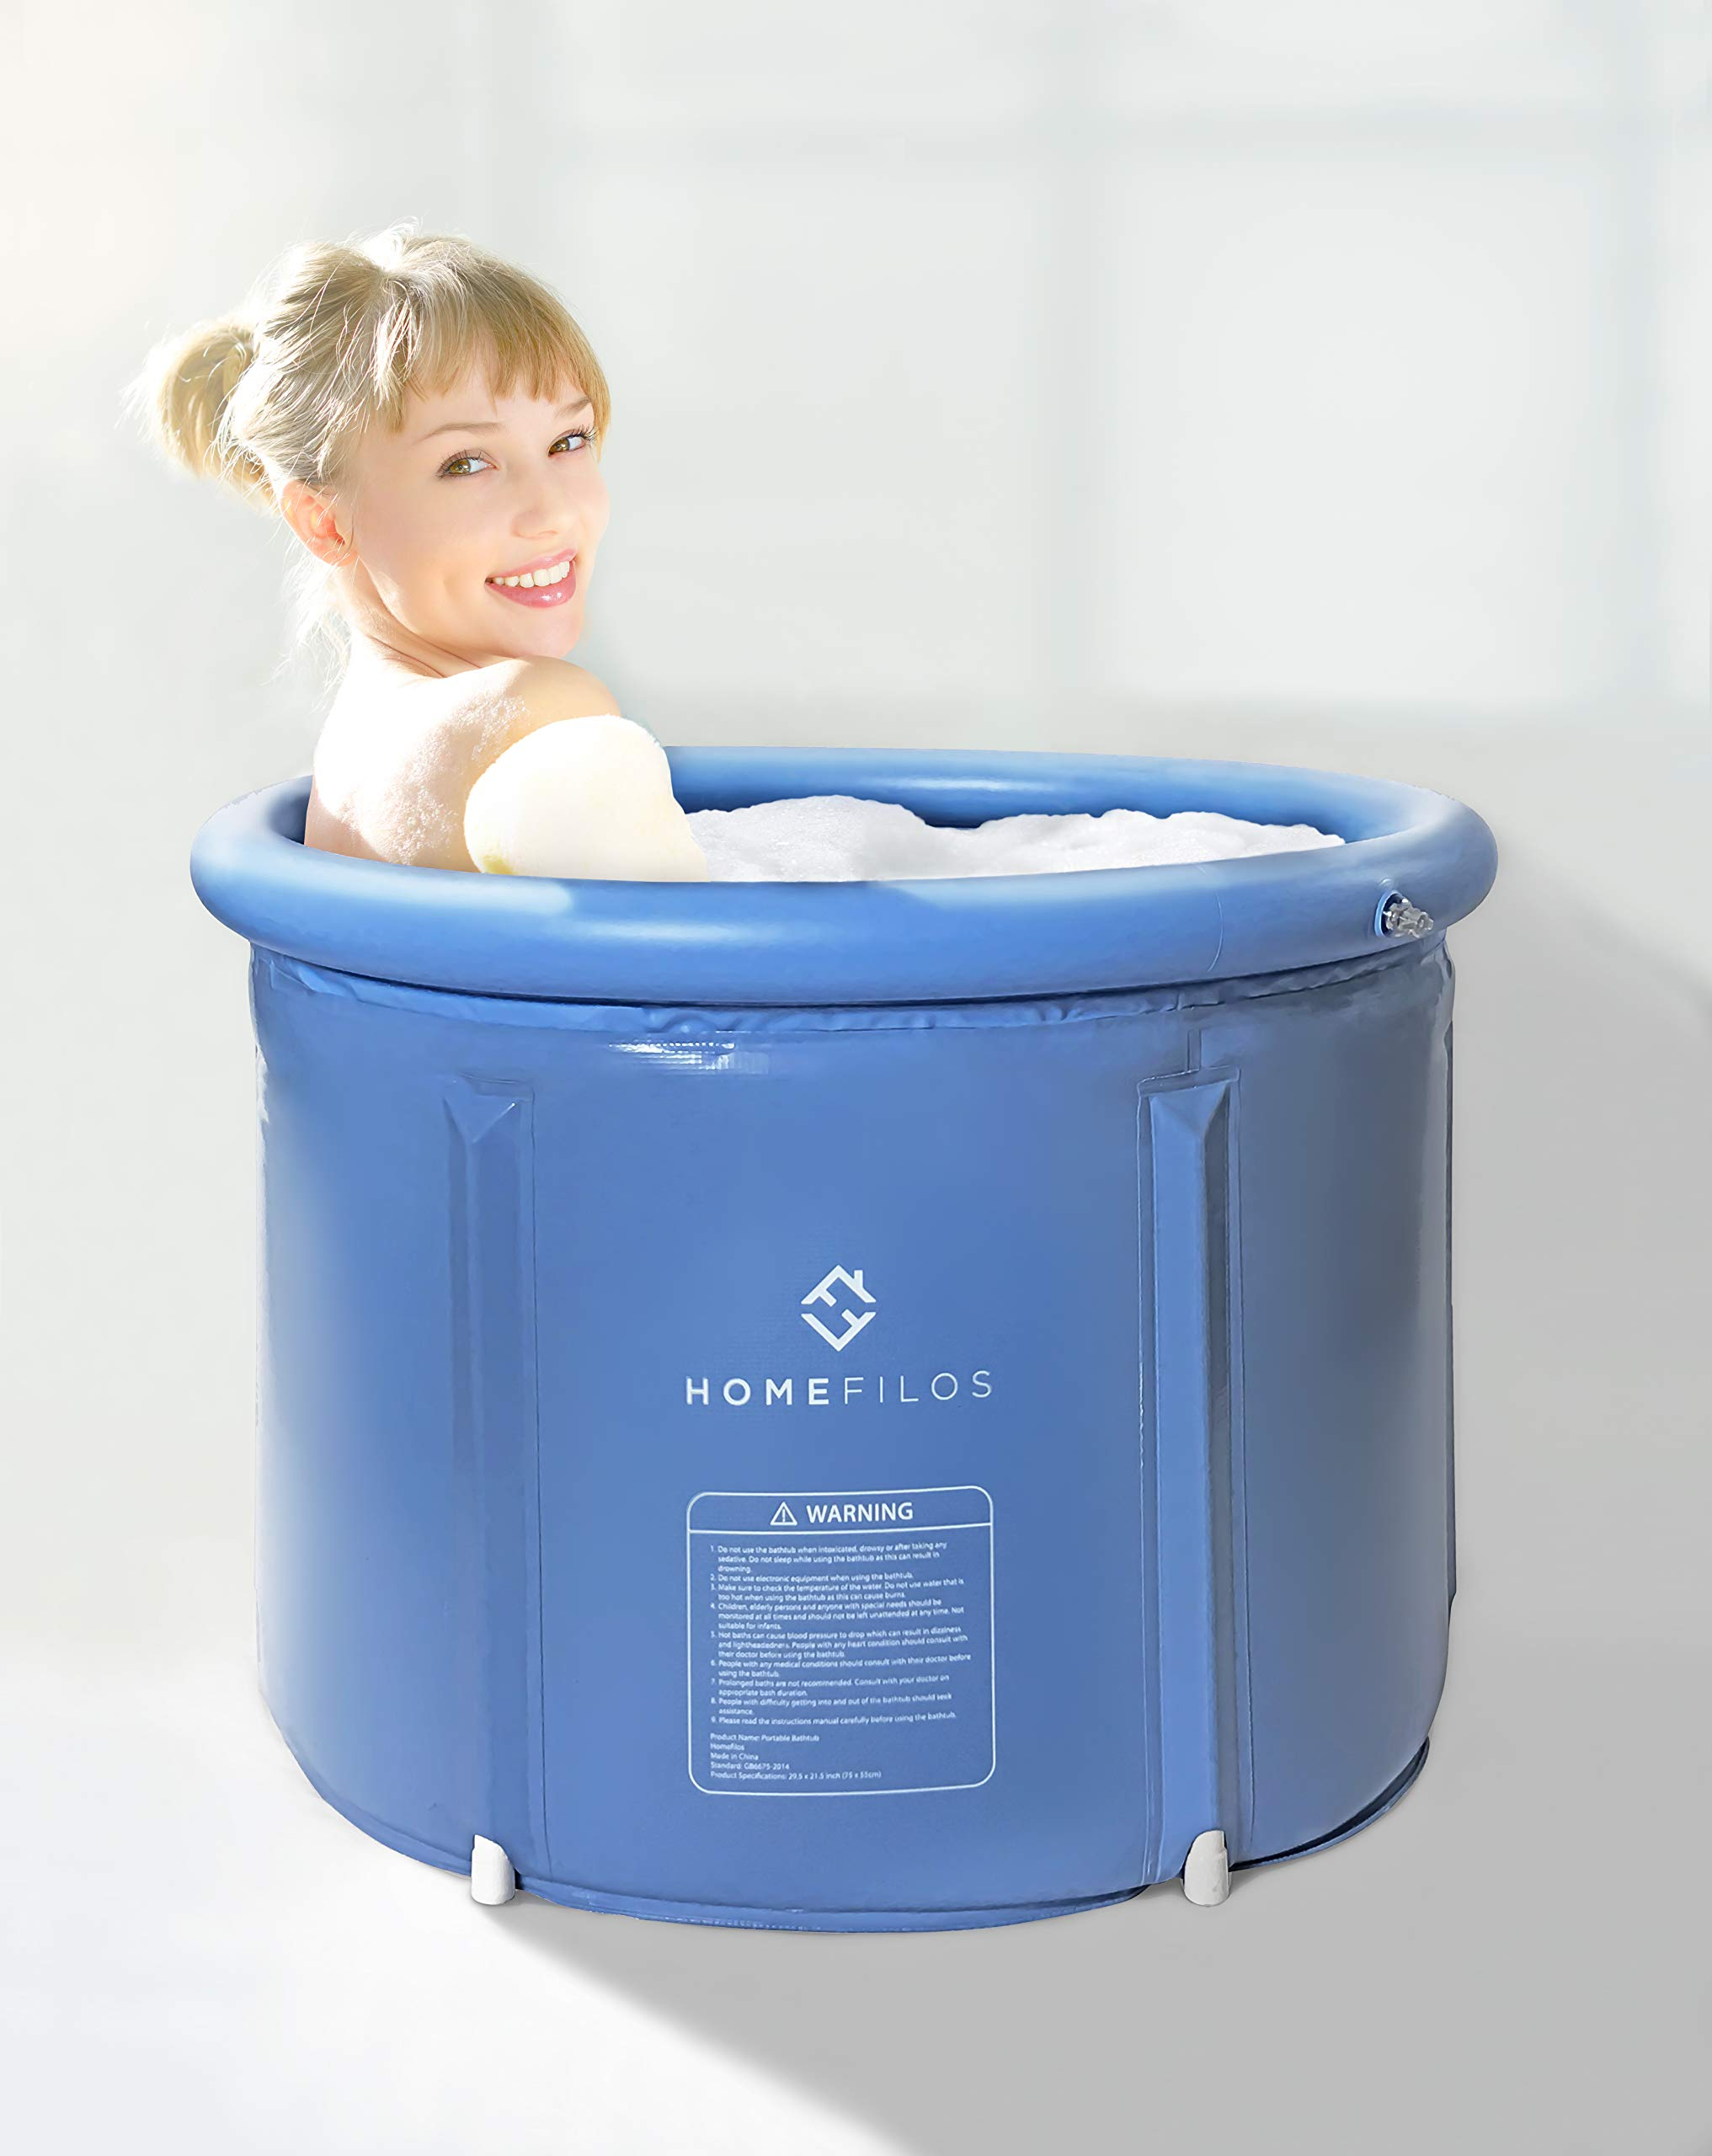 . Details about Portable Bathtub  Small  by Homefilos  Japanese Soaking Bath  Tub for Shower